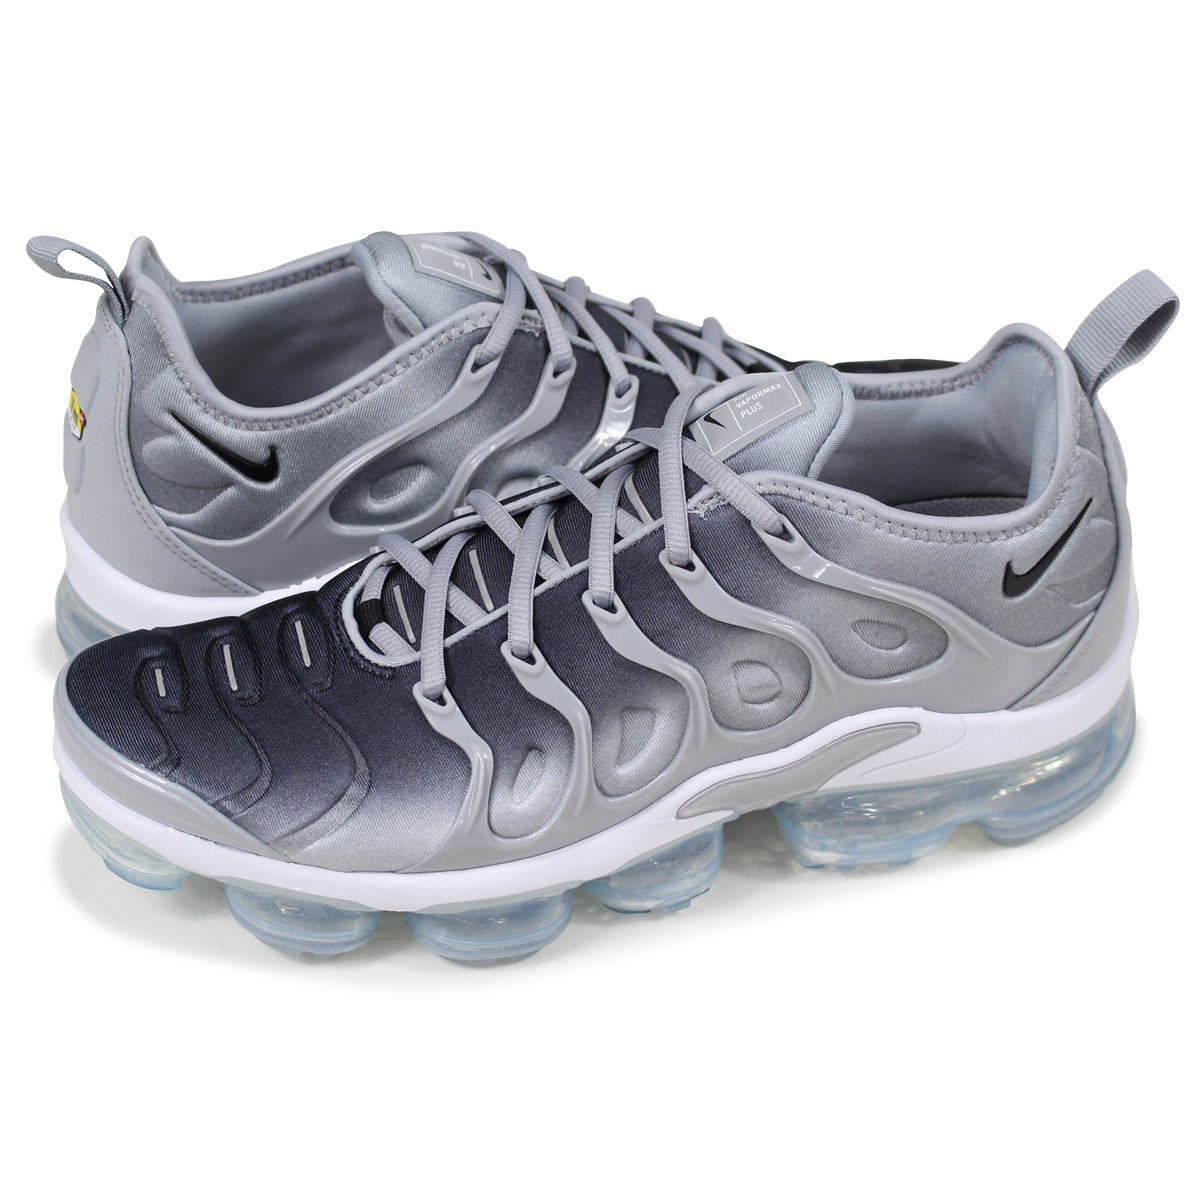 size 40 dc008 f9541 NIKE AIR VAPORMAX PLUS Nike air vapor max plus sneakers men 924,453-007  gray [load planned Shinnyu load in reservation product 5/12 containing]